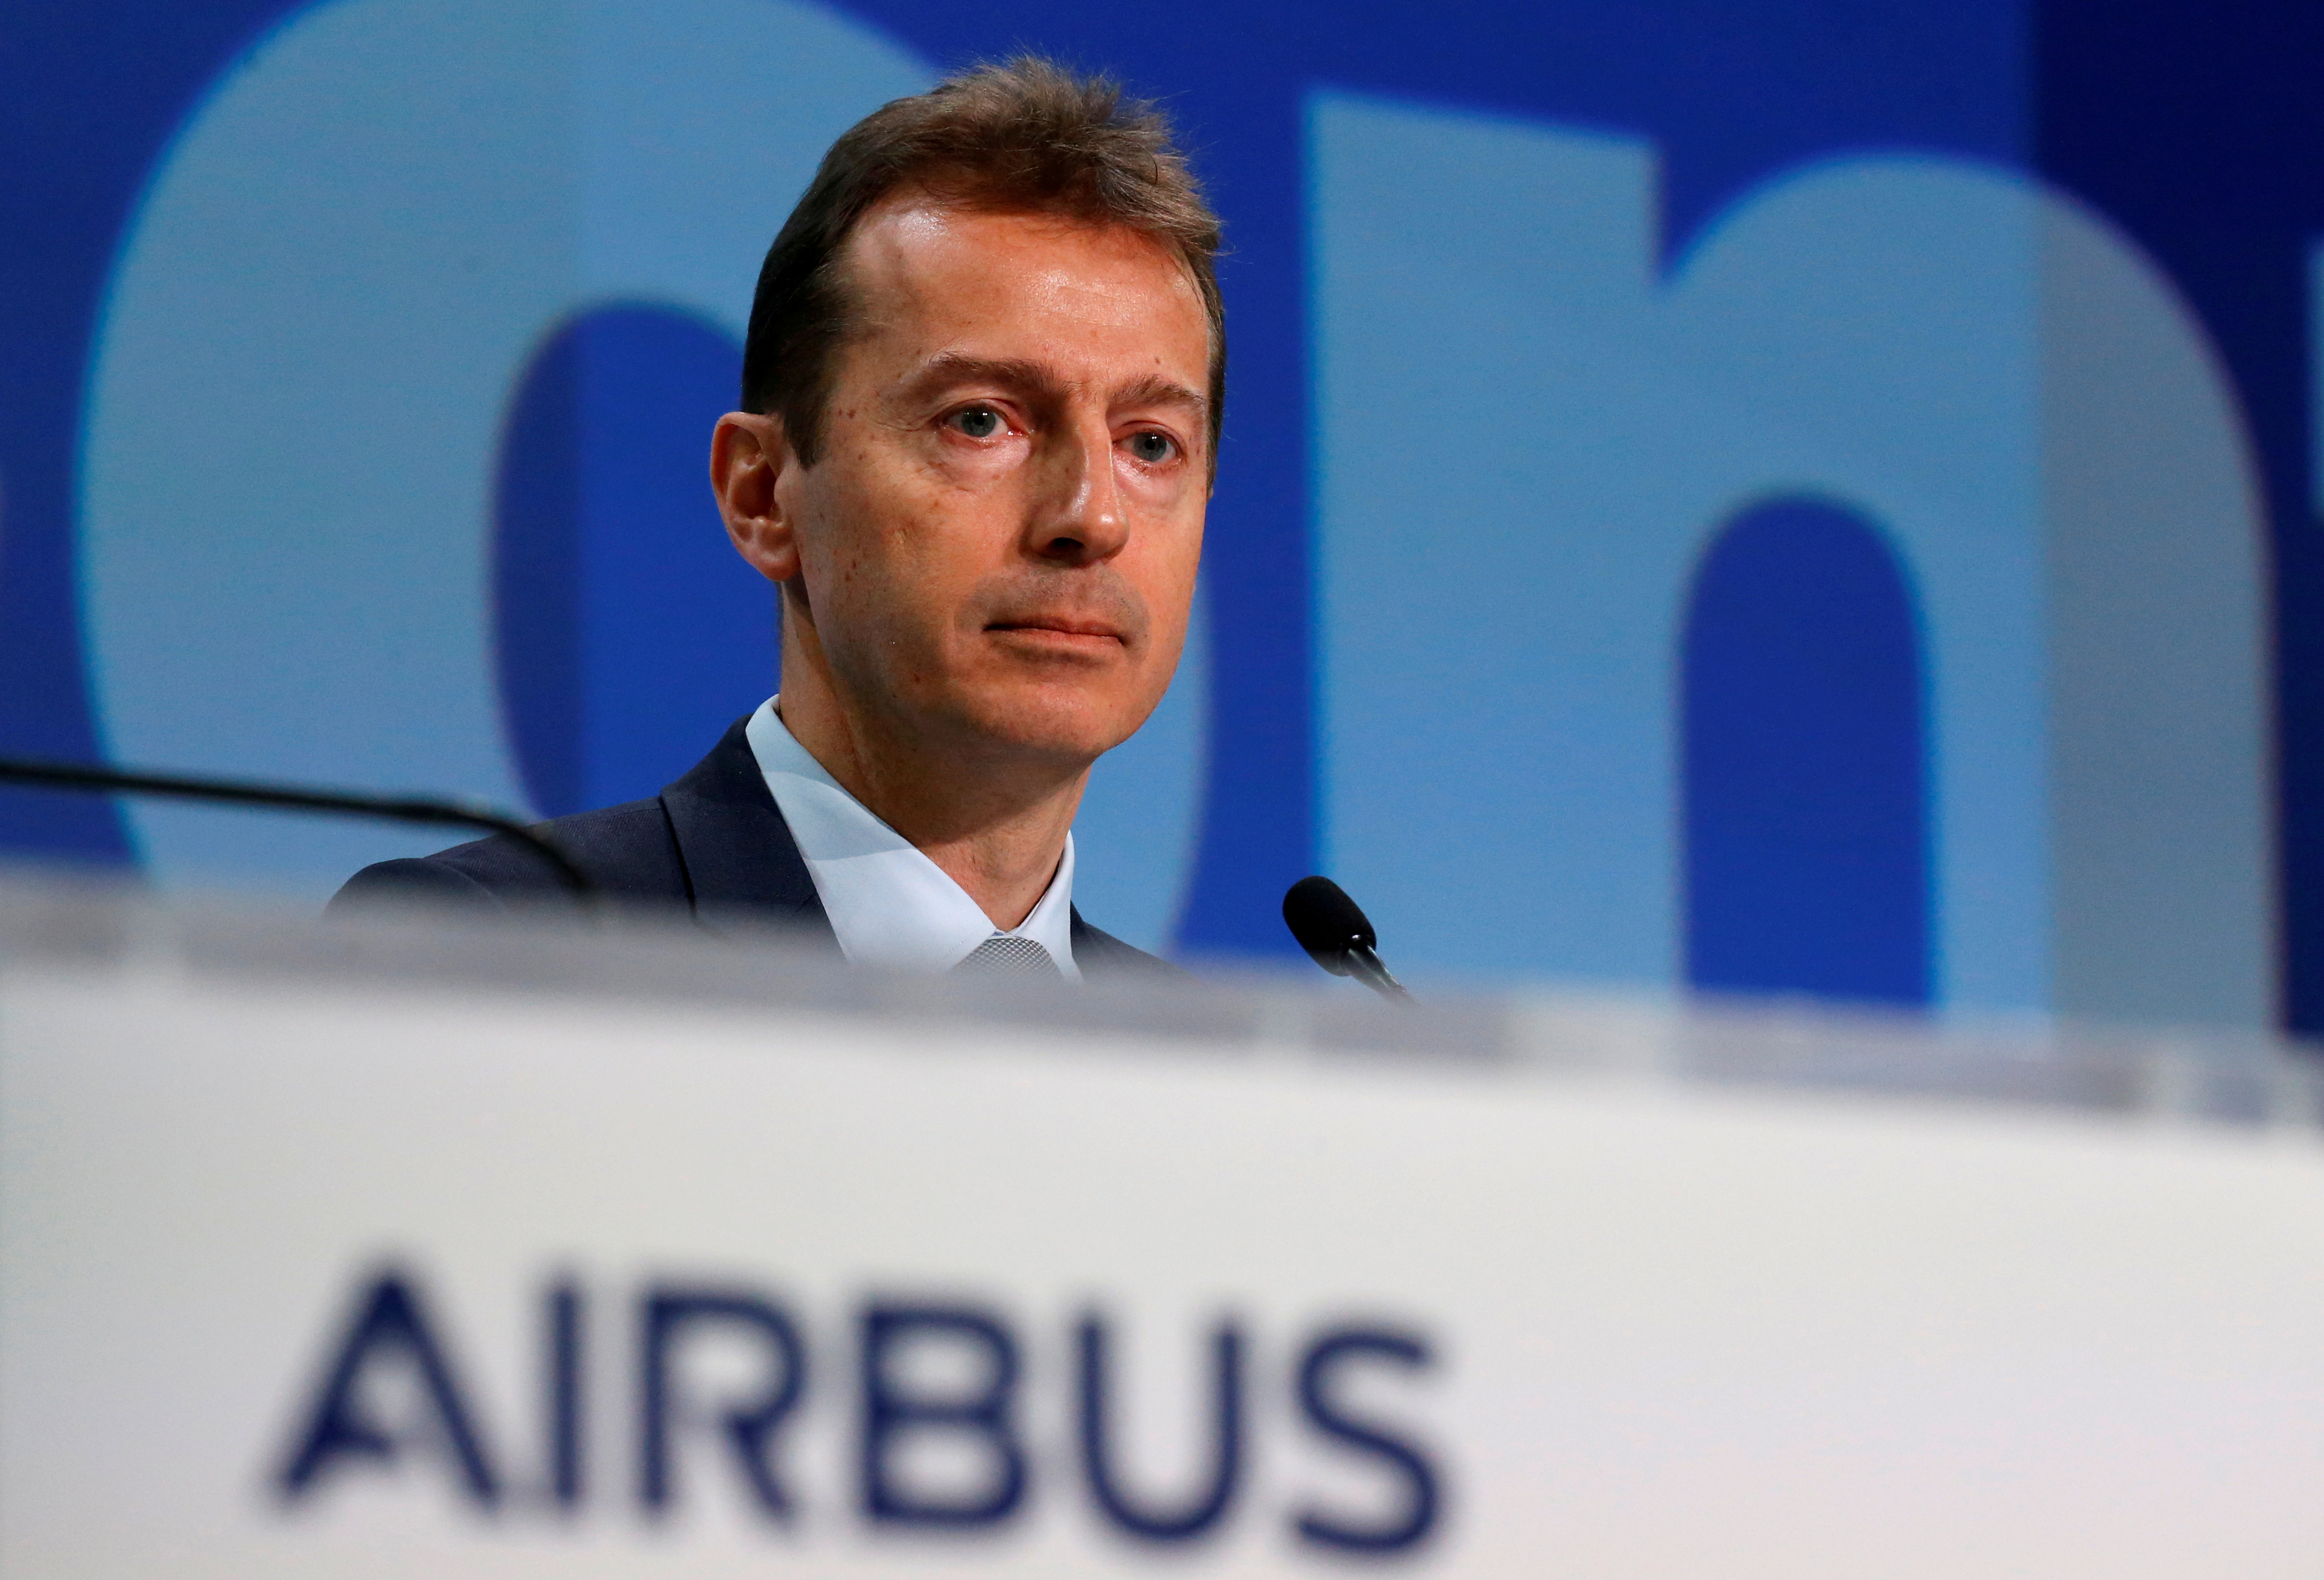 Airbus CEO Guillaume Faury attends Airbus's annual news conference on 2019 results in Blagnac near Toulouse, France, February 13, 2020.  REUTERS/Regis Duvignau/File Photo